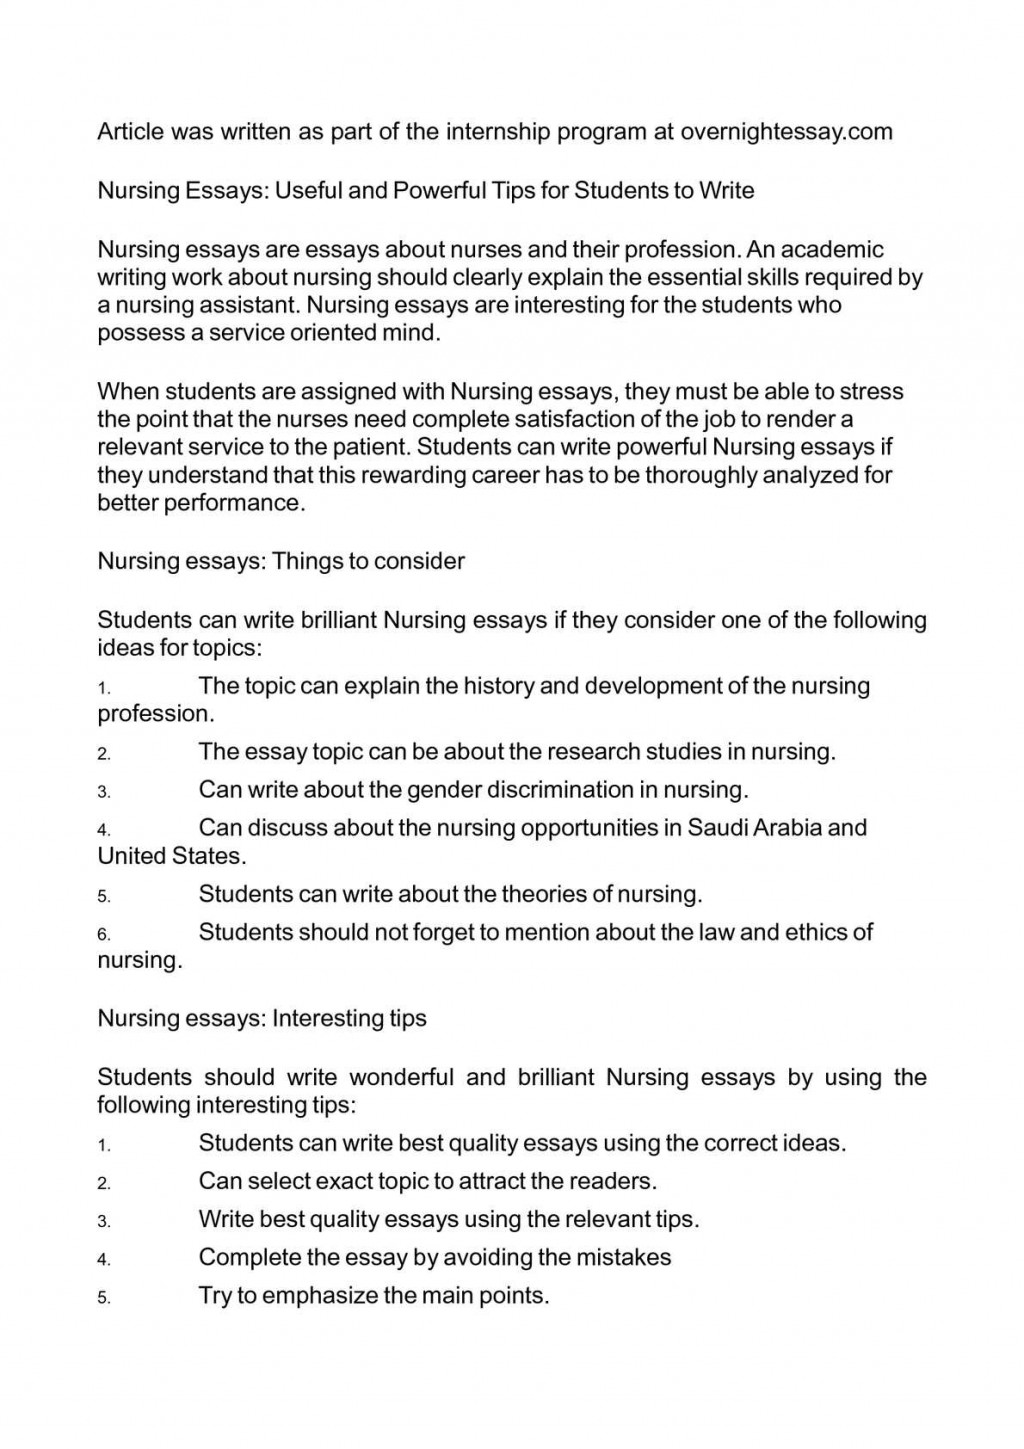 002 P1 Essay On Nursing Profession Exceptional In Hindi Pakistan Short Large